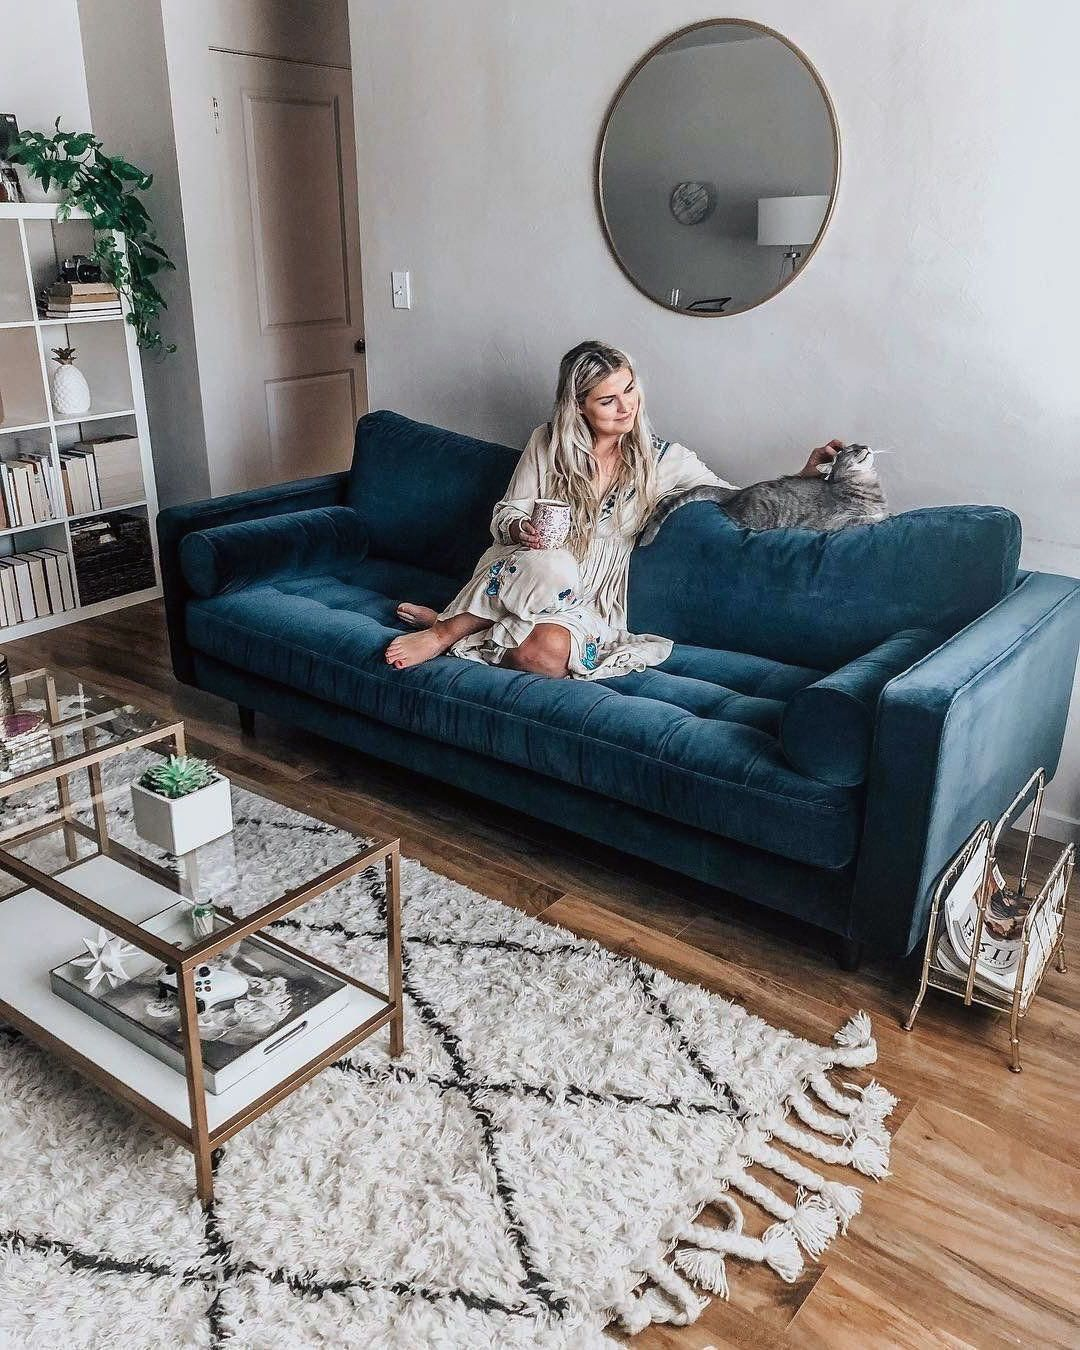 Scandinavian Living Rooms Blue Ideas 24 Blue Couch Living Room Living Room Scandinavian Blue Living Room